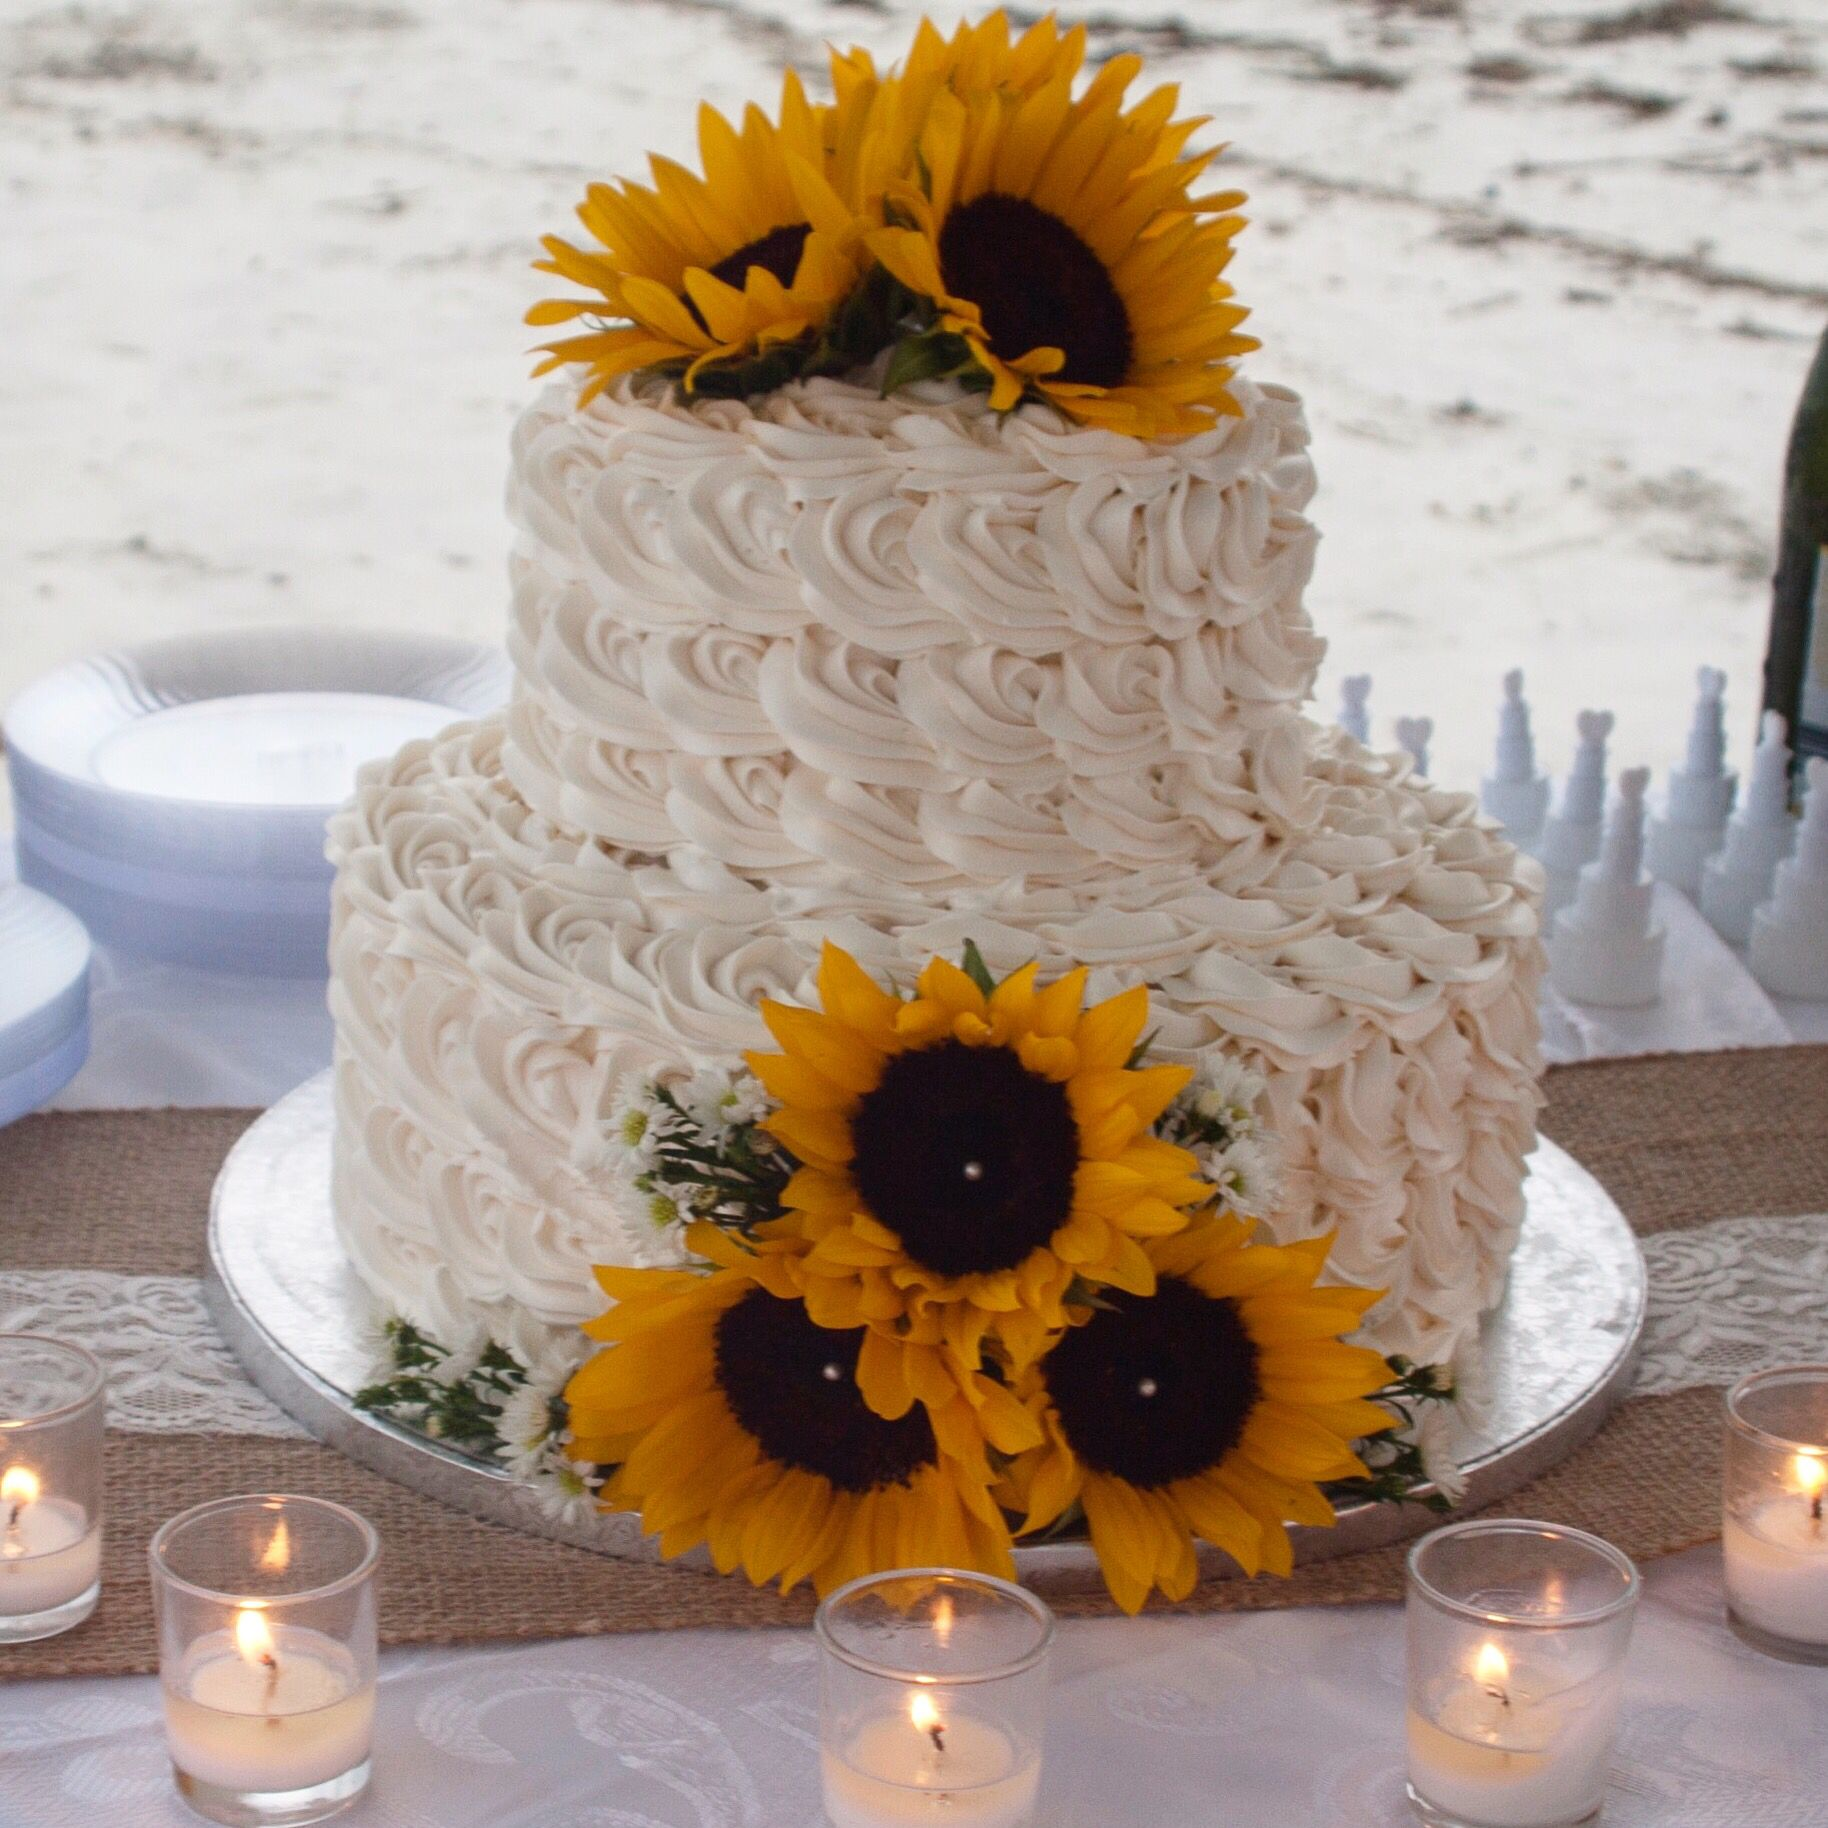 Sunflower Wedding Cake Ideas: Our Wedding Cake. Cake Made From Publix Bakery. Our